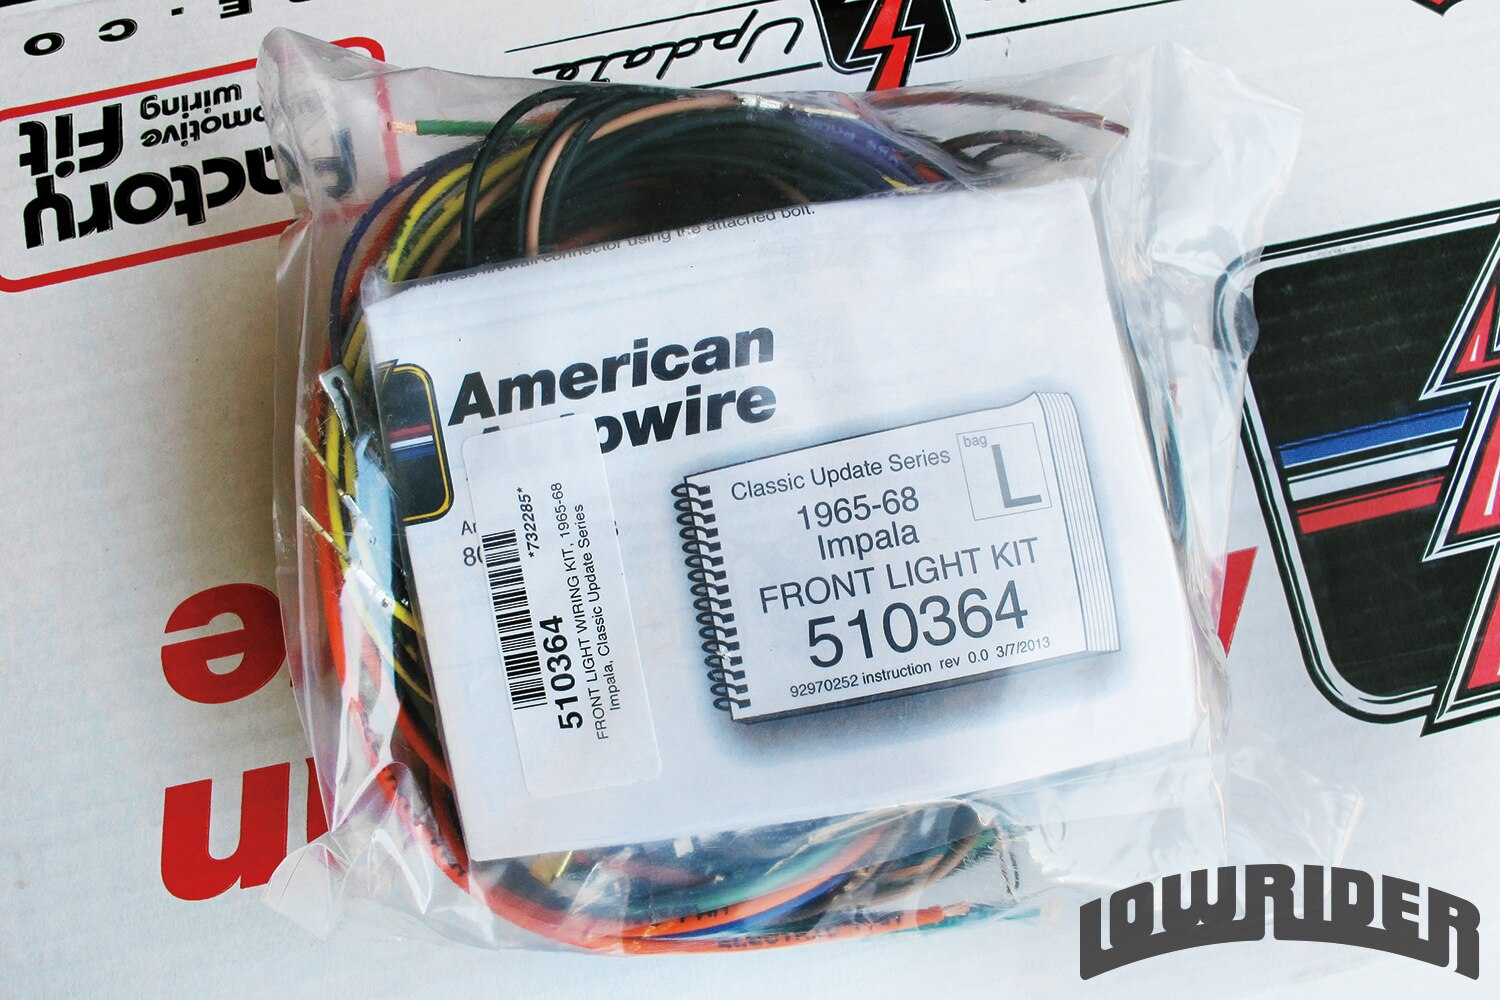 American autowire install lowrider magazine this kit is fully labeled and publicscrutiny Choice Image